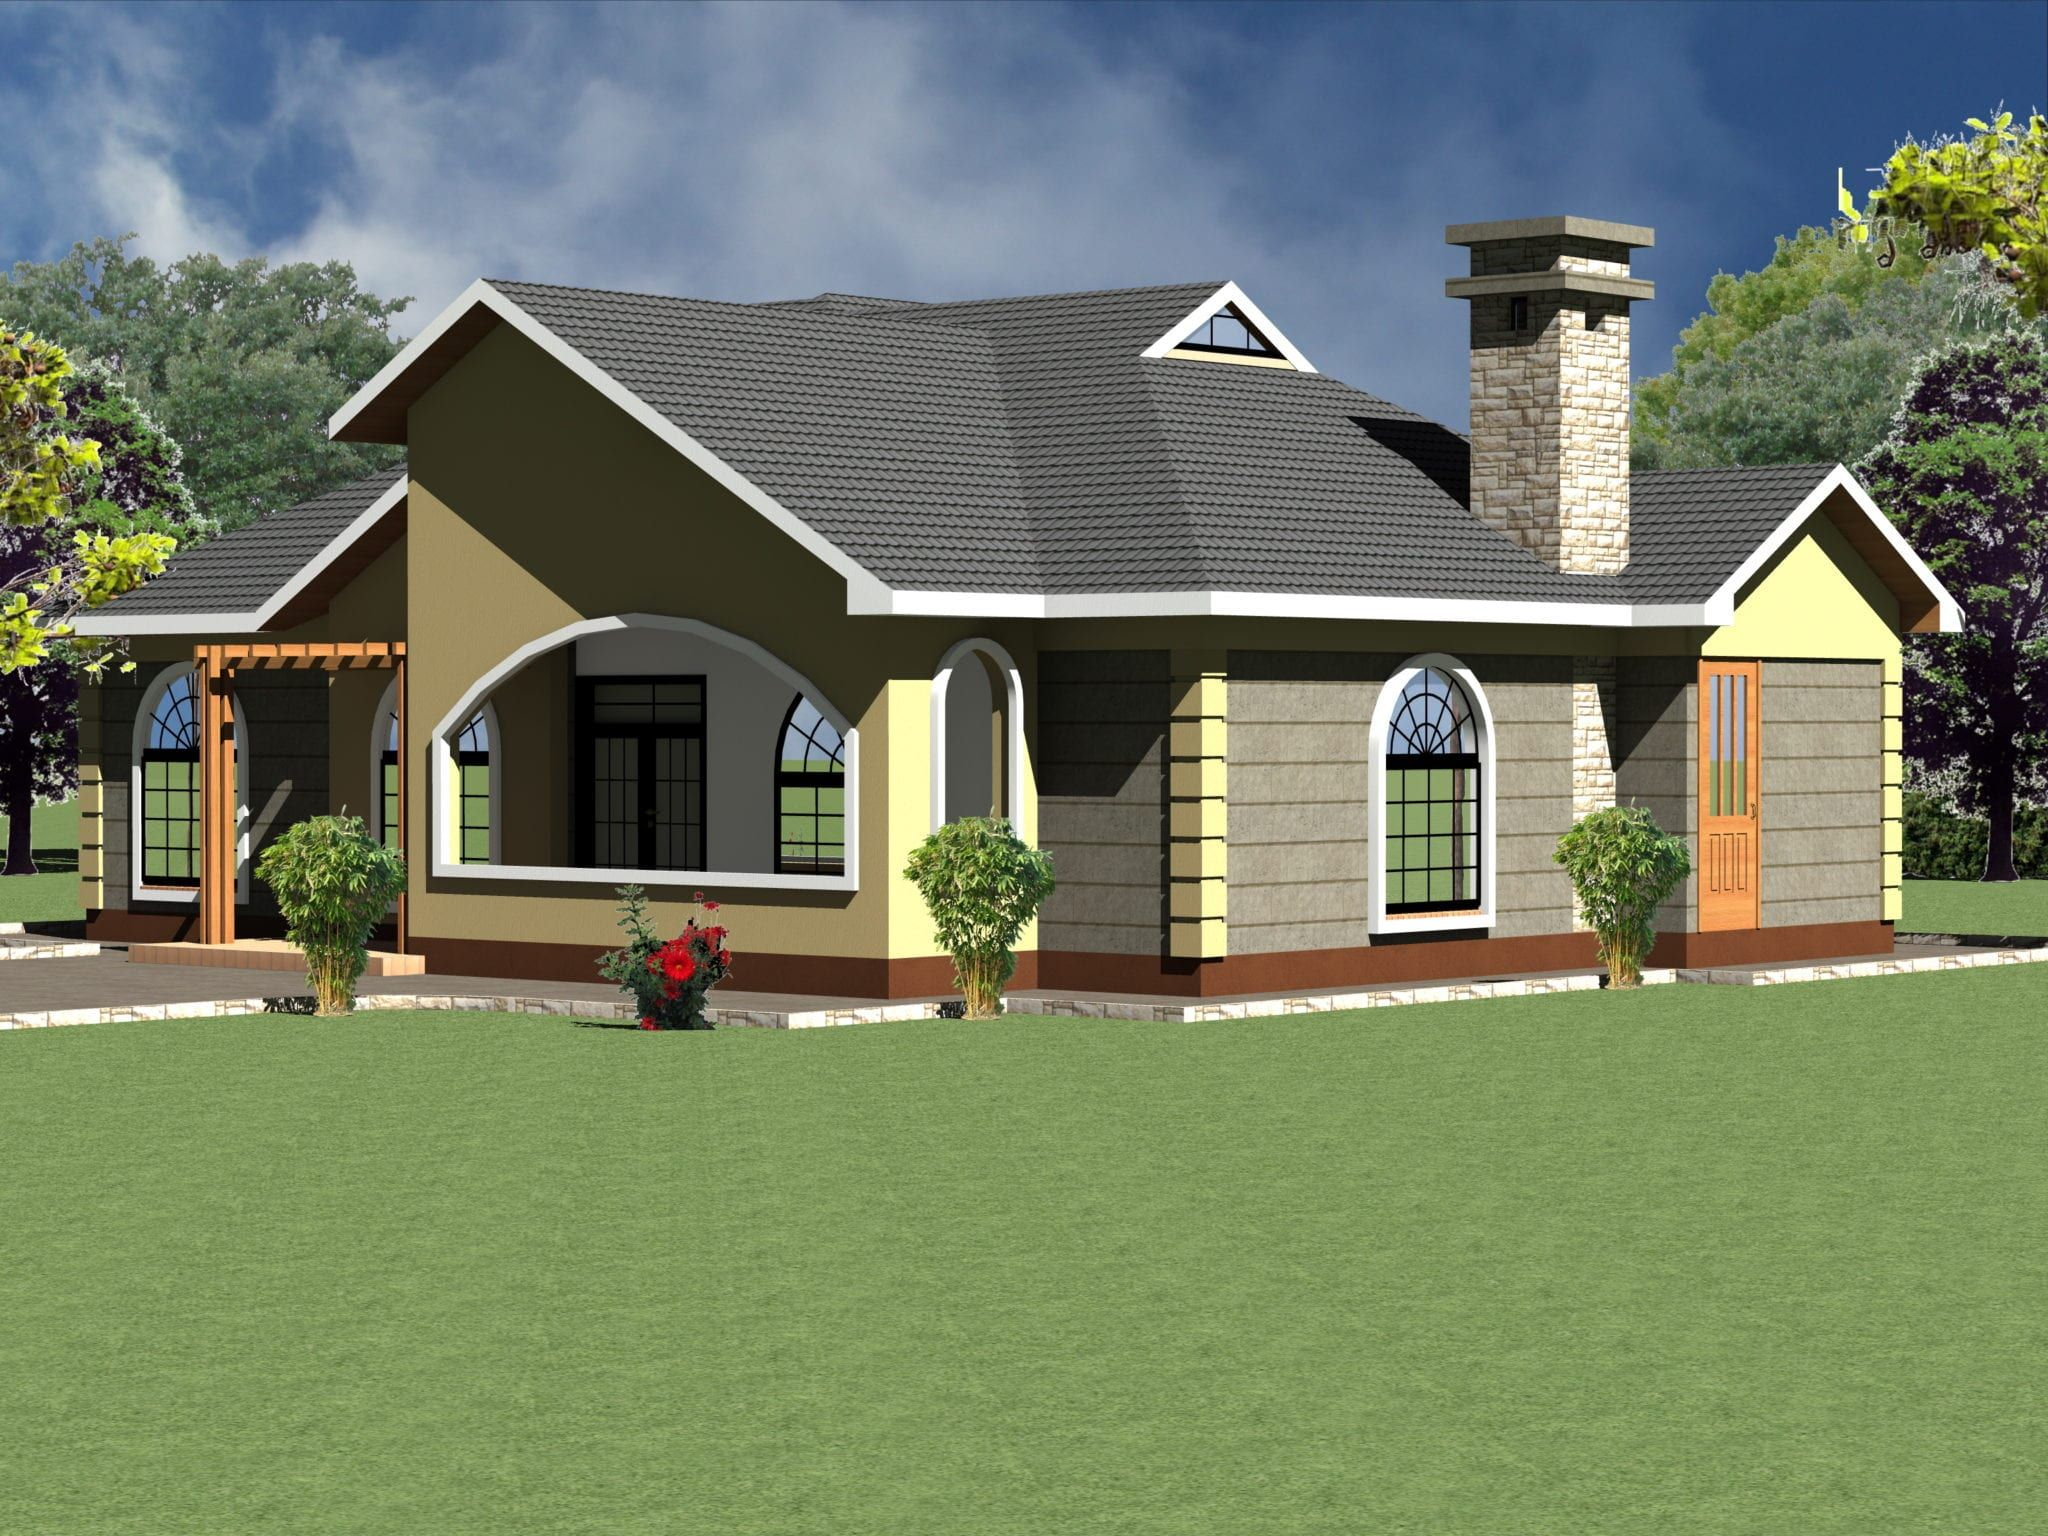 Four Bedroom House For Sale In 2020 Modern Bungalow House Plans Bungalow House Plans Four Bedroom House Plans